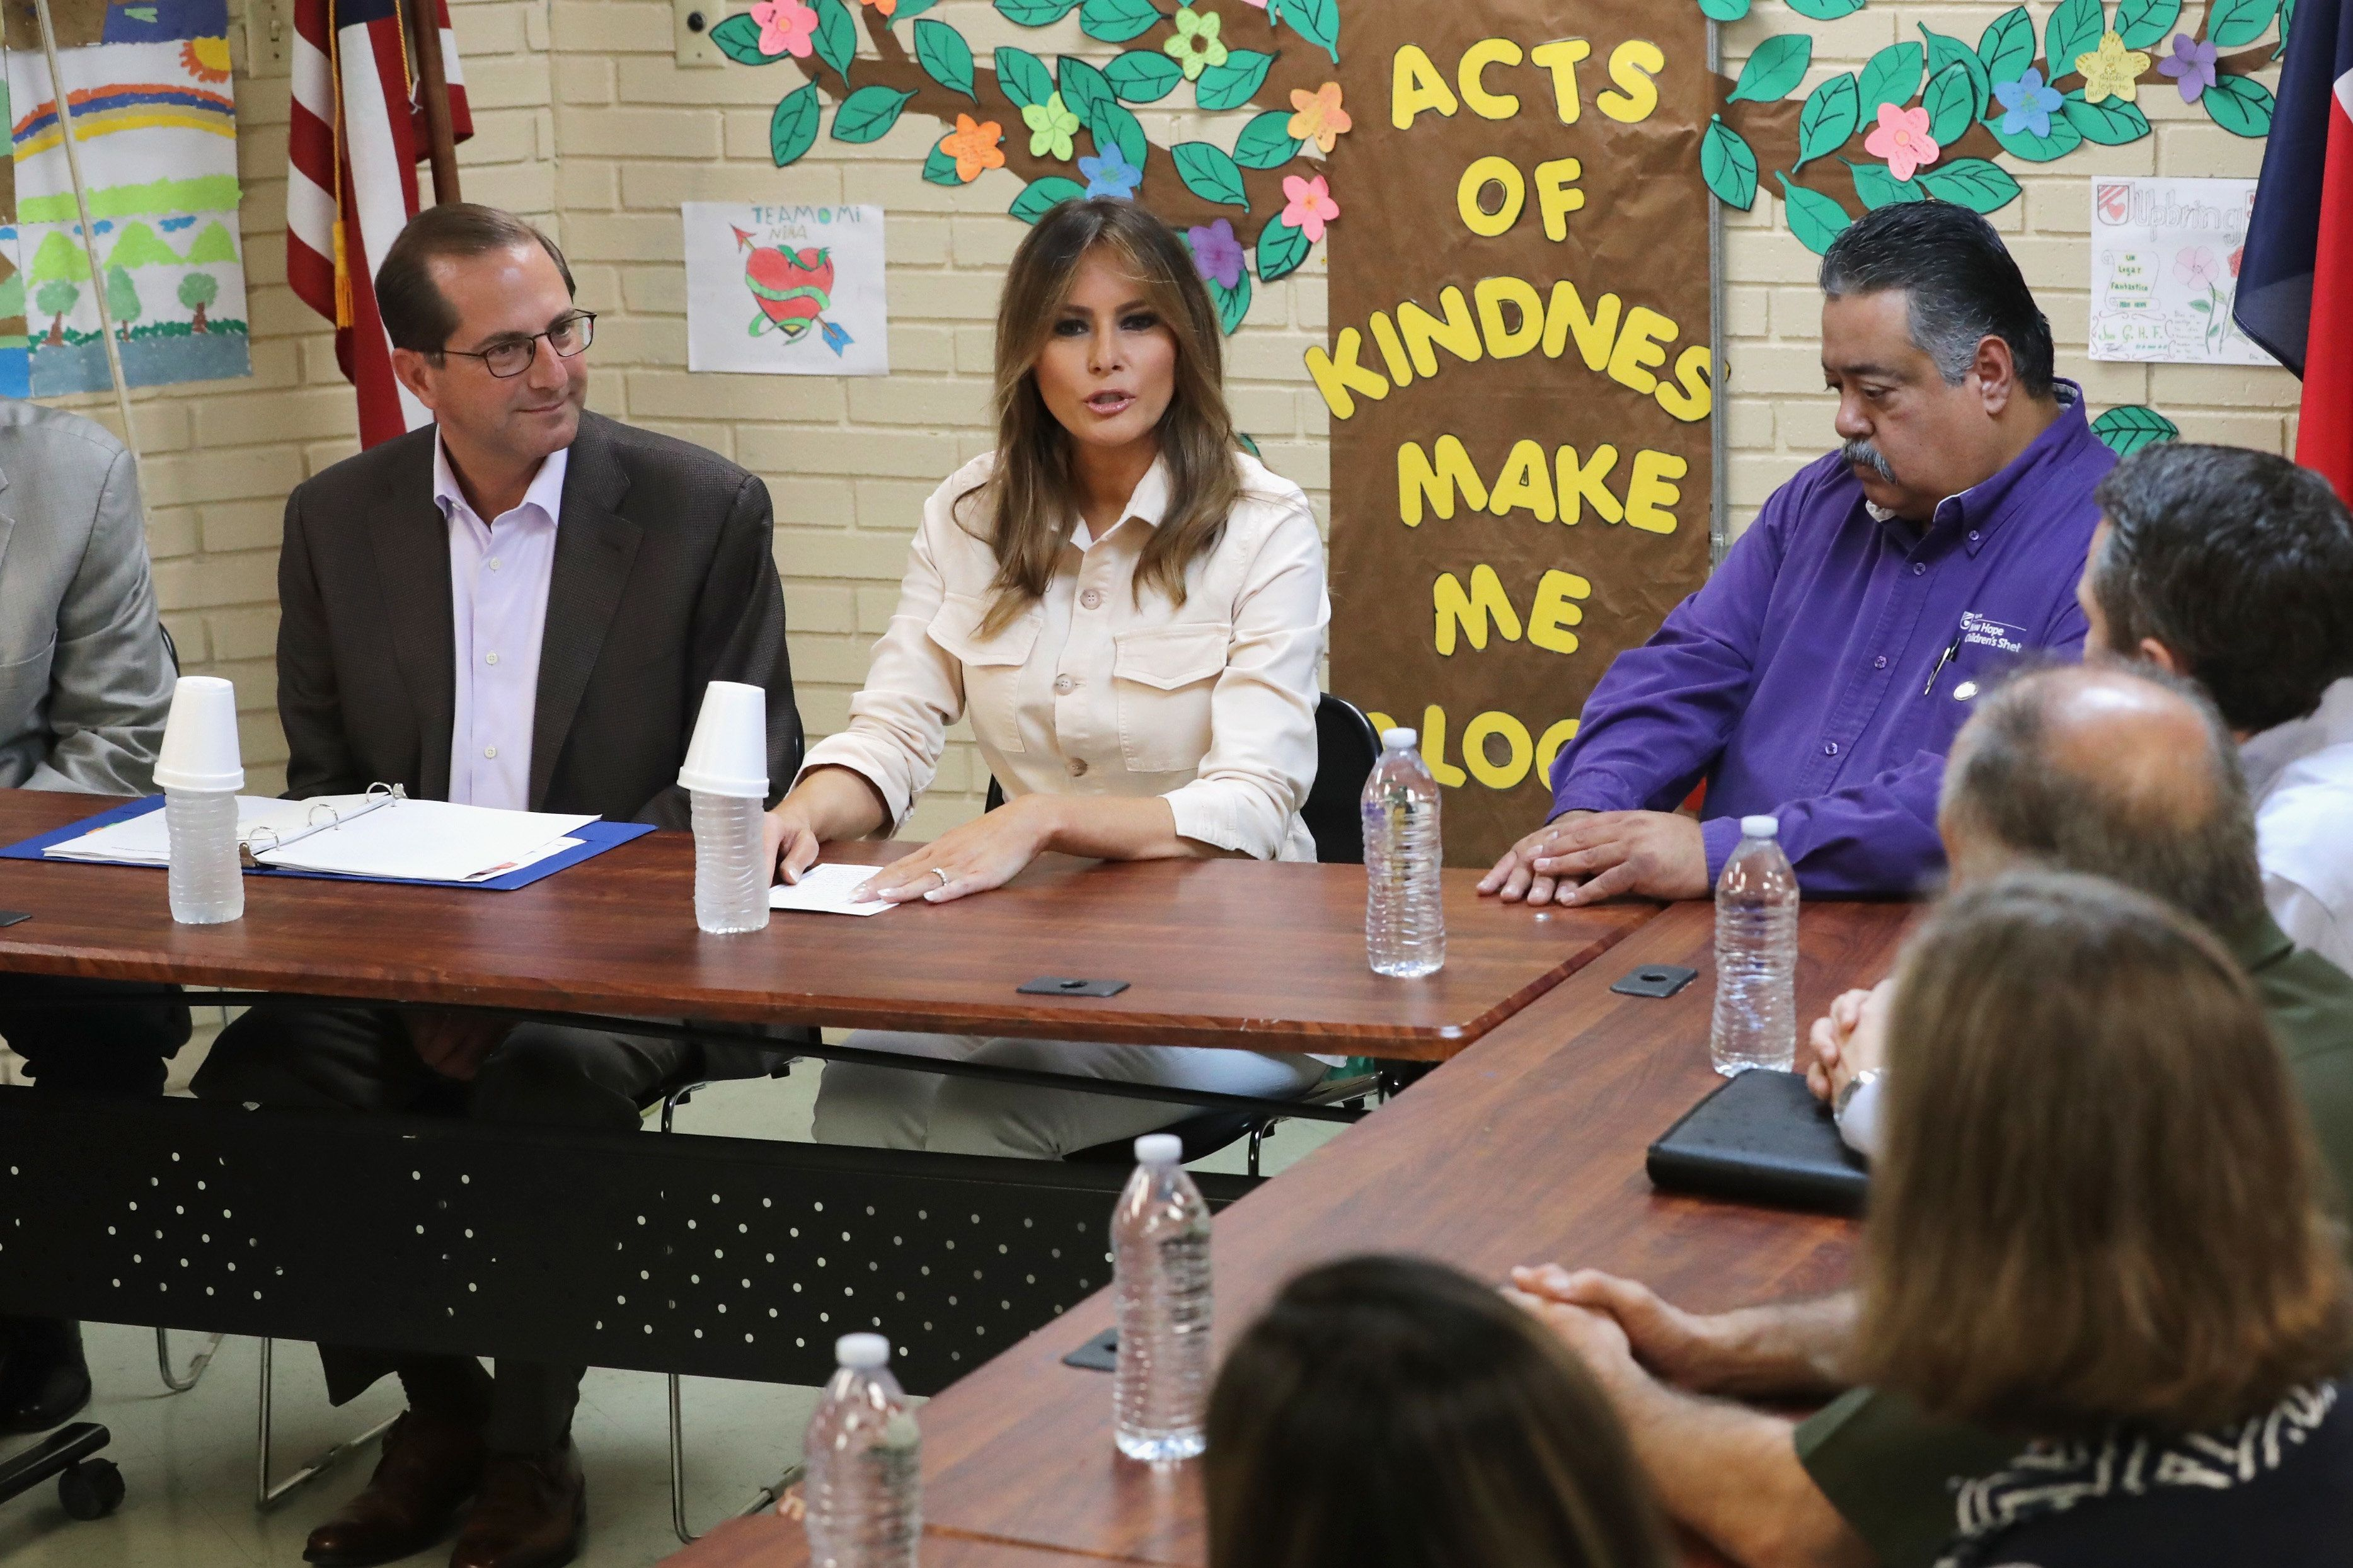 MCALLEN, TX - JUNE 21:  U.S. first lady Melania Trump participates in a round table discussion alongside HHS Secretary Alex Azar (L) and program director Rogelio de la Cerda Jr. (R), with doctors and social workers at the Upbring New Hope Childrens Center operated by Lutheran Social Services of the South and contracted with the Department of Health and Human Services June 21, 2018 in McAllen, Texas. The first lady traveled to Texas to see first hand the condition and treatment that migrant children taken from their families at the U.S.-Mexico border are receiving from the federal government. Following public outcry and criticism from members of his own party, President Donald Trump signed an executive order Wednesday to stop the separation of migrant children from their families, a practice the administration employed to deter illegal immigration at the border.  (Photo by Chip Somodevilla/Getty Images)